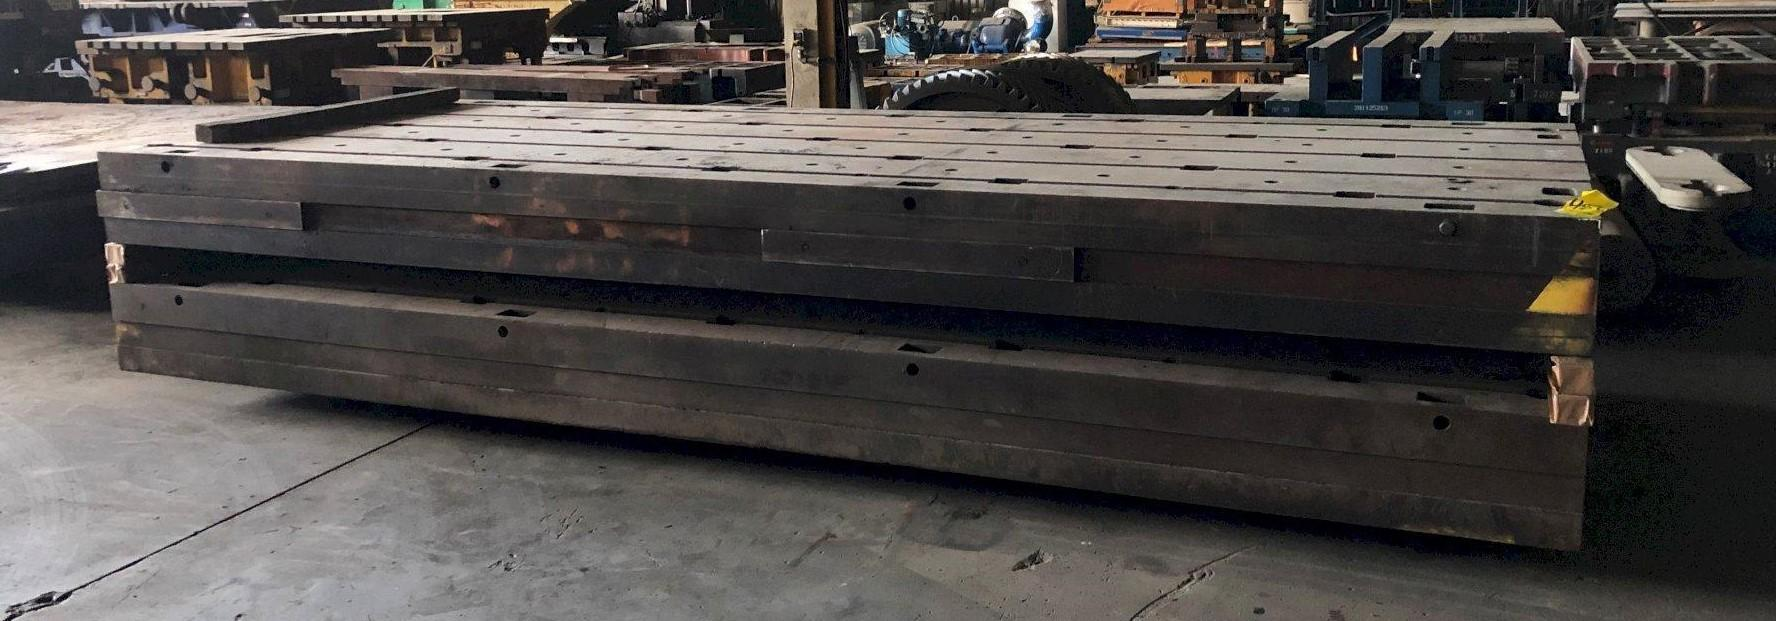 """77"""" x 203"""" x 13-3/4"""" T-SLOTTED FLOOR PLATE: STOCK #11489"""